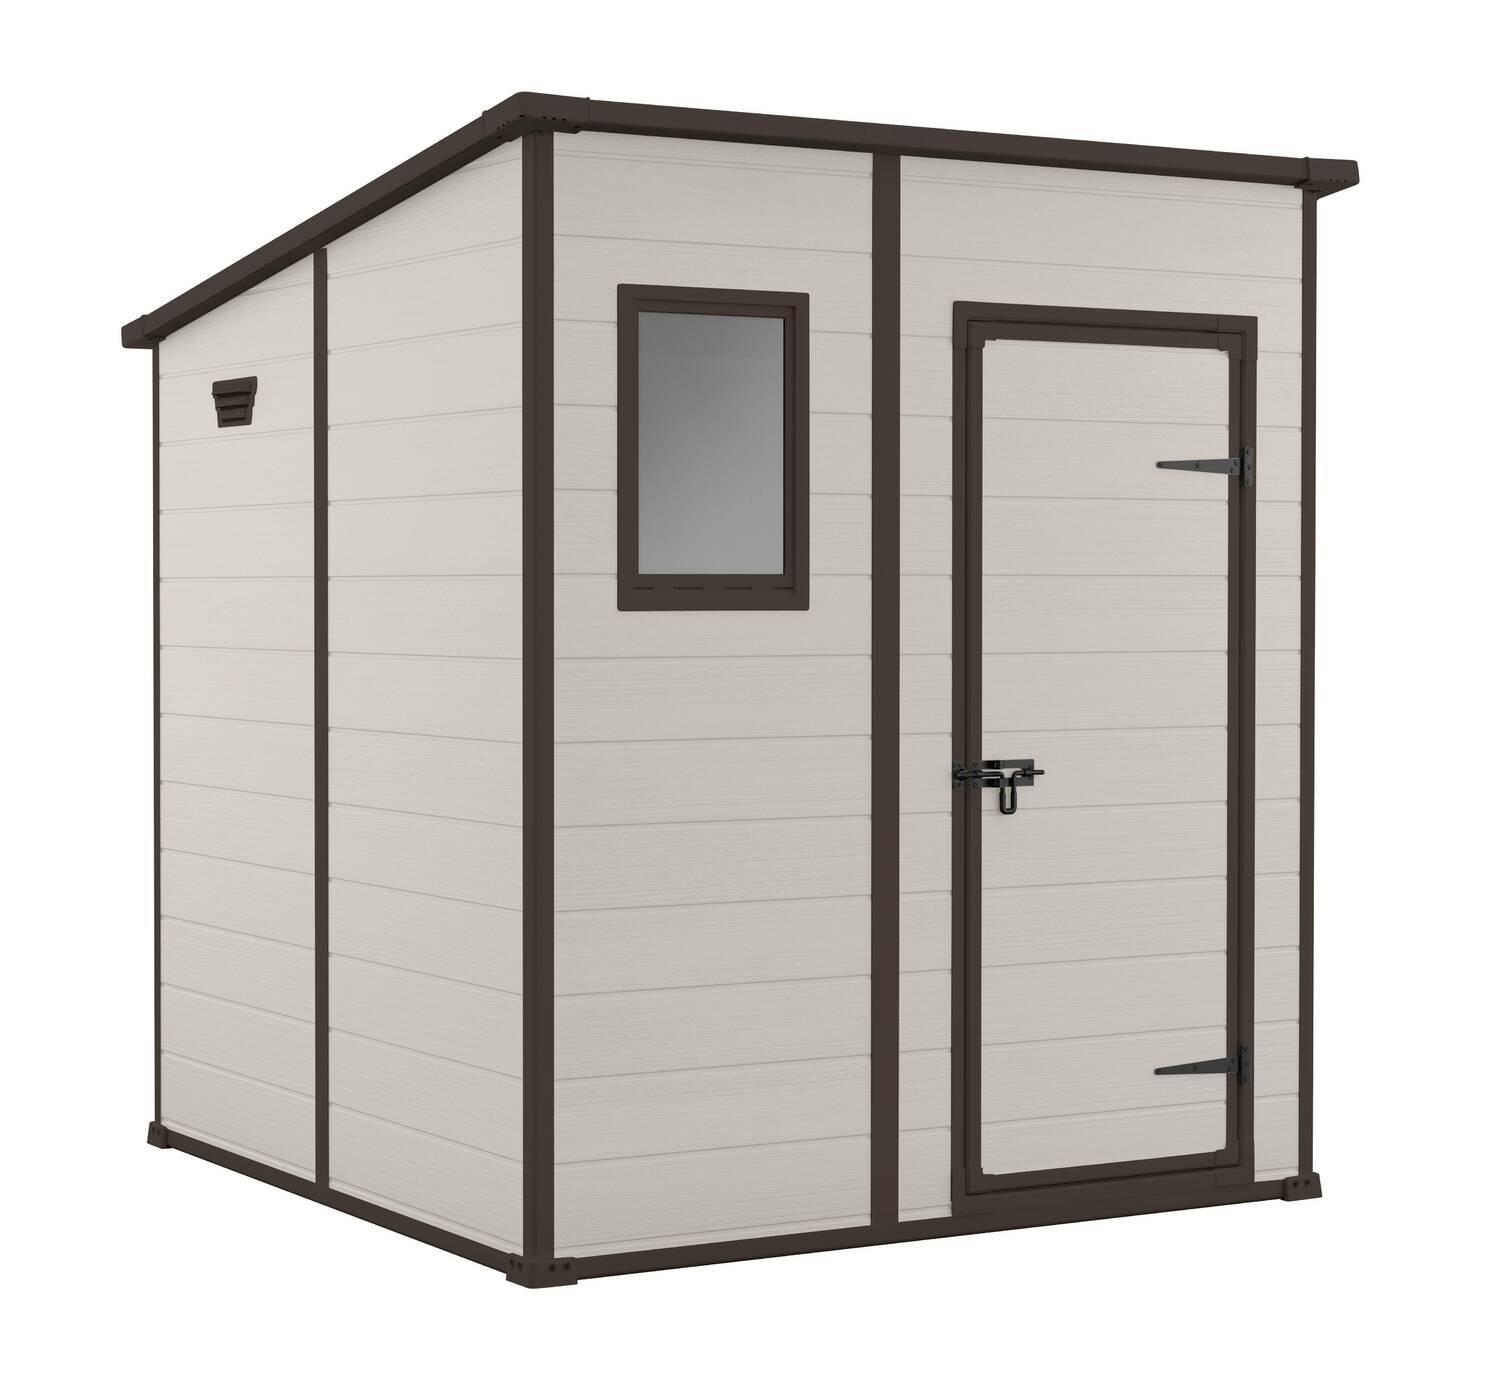 Keter Manor Pent Garden Storage Shed 6 x 6ft - Beige/Brown